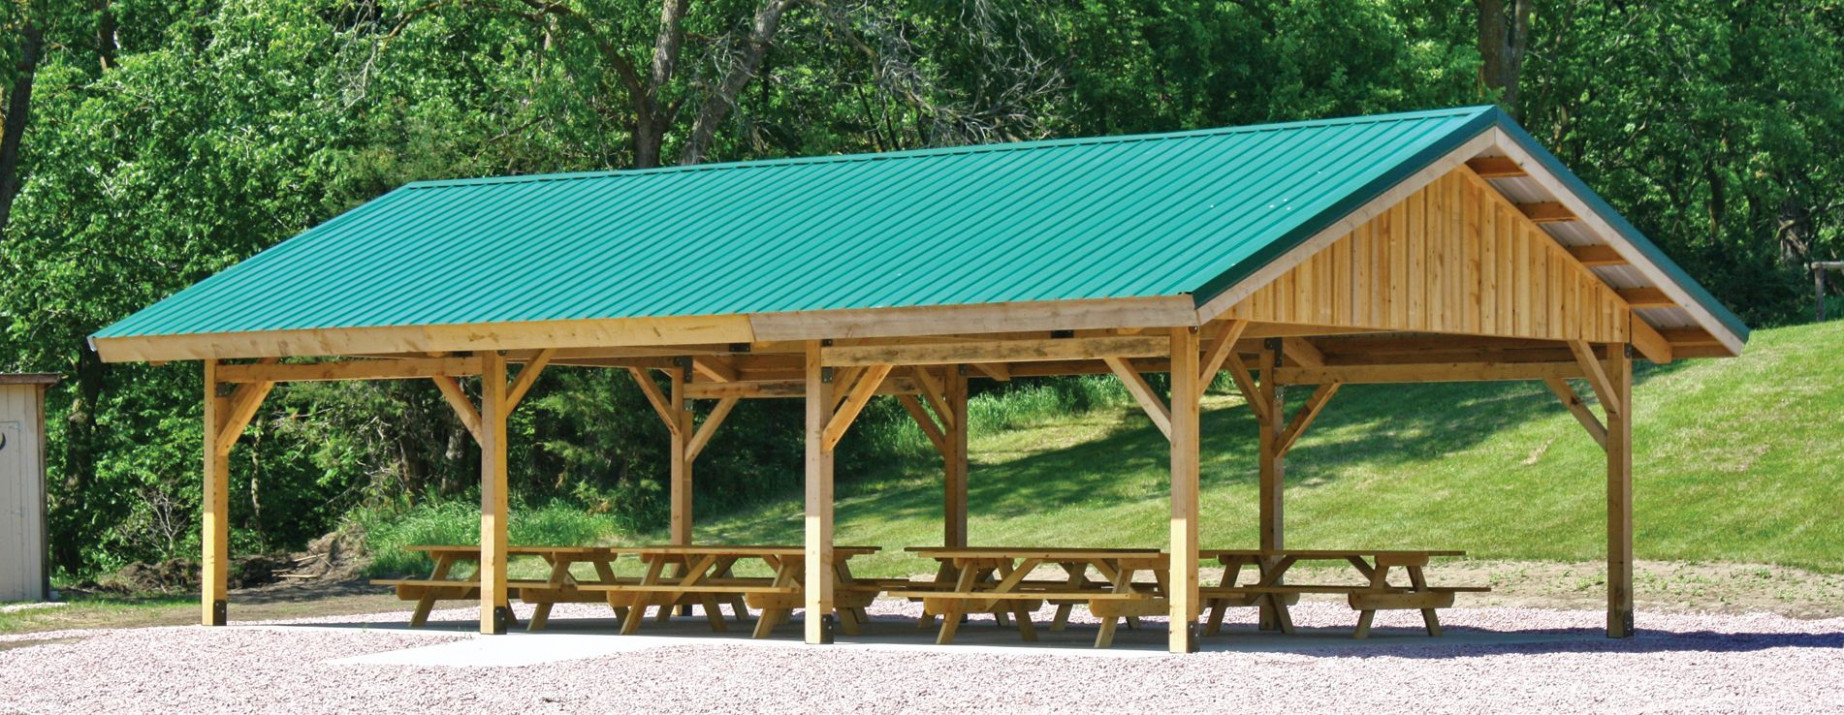 Post And Beam Carport Kit | RevolutionHR